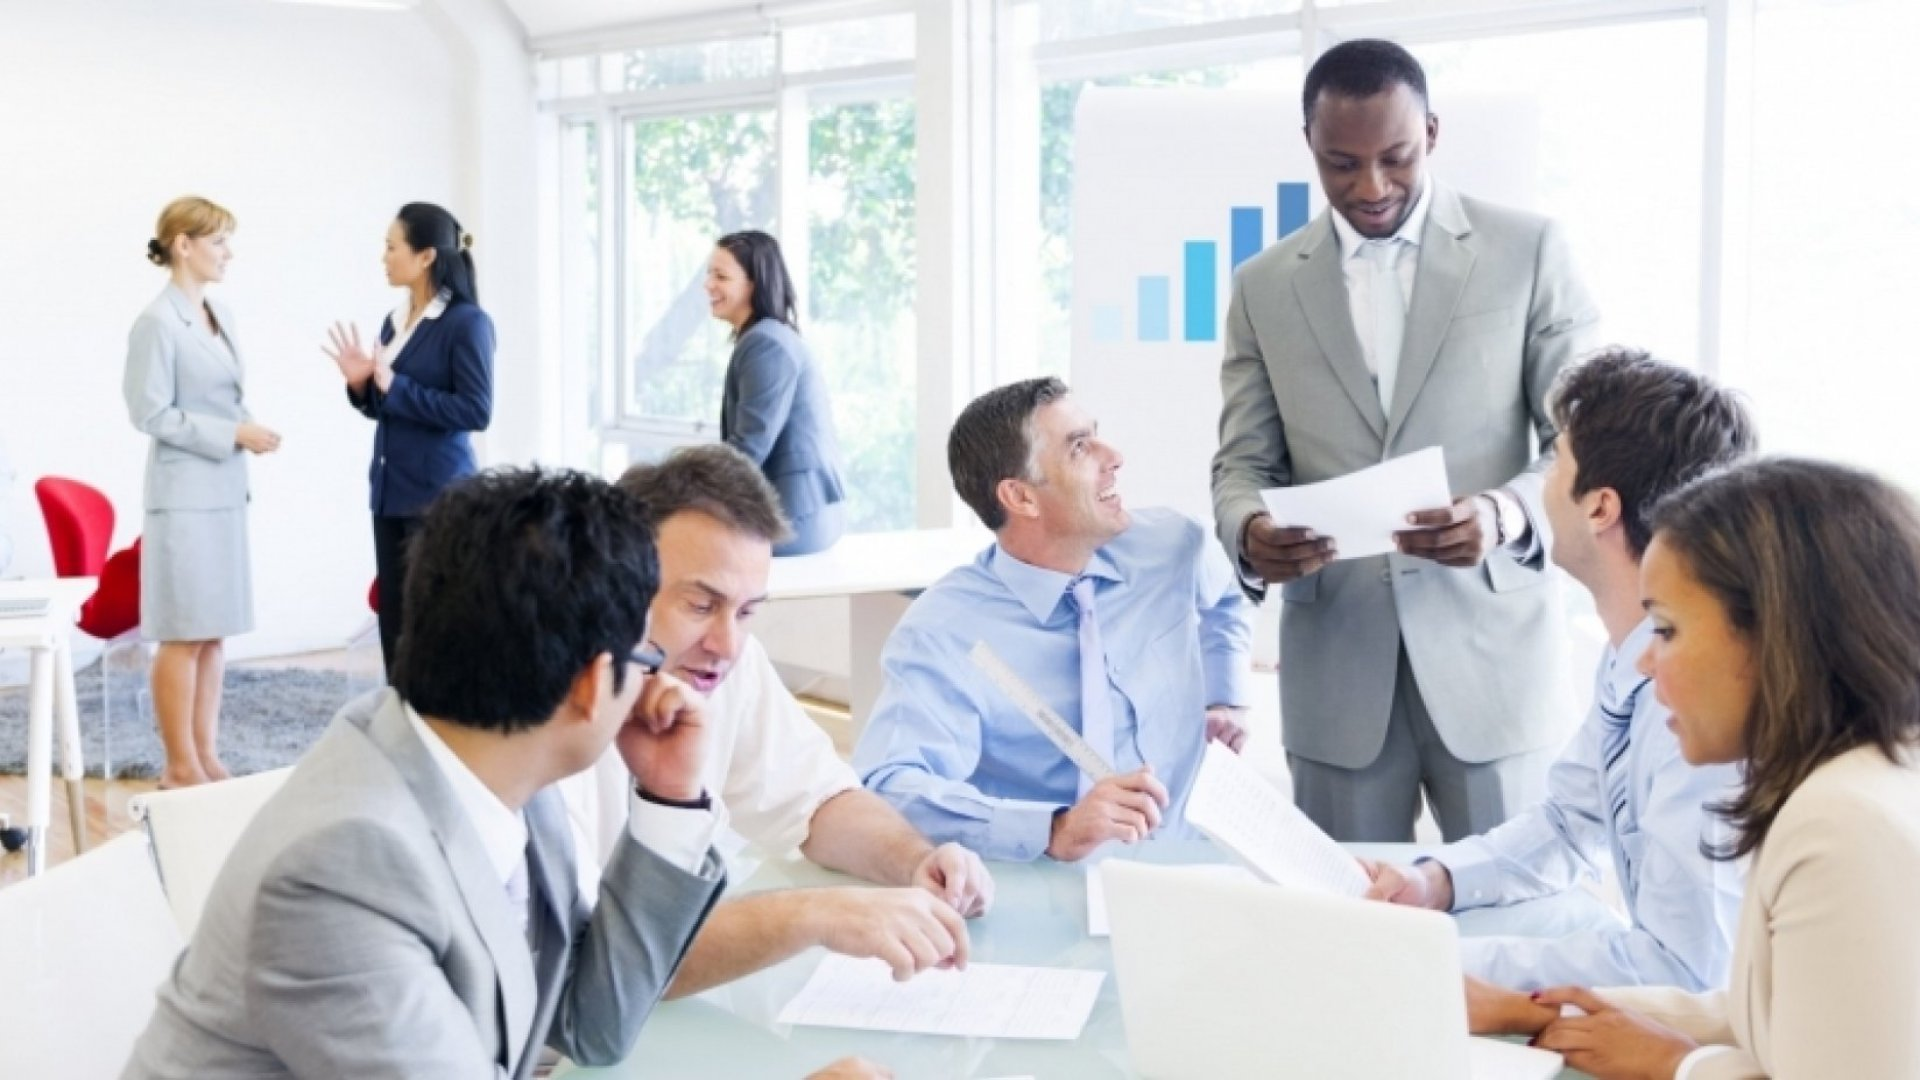 How to Hire and Train a Successful Sales Team